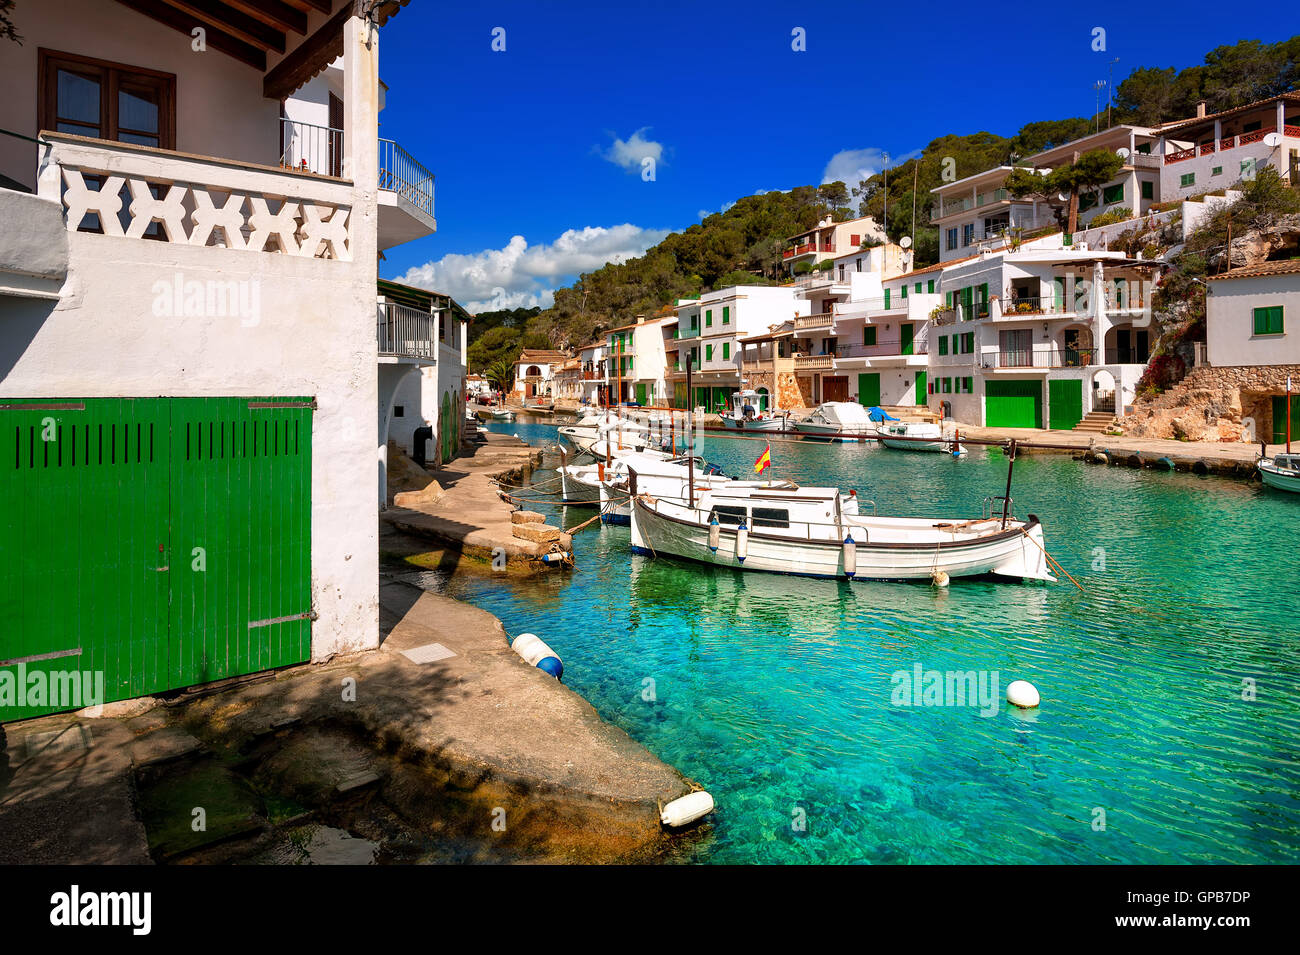 White villas and boats on green water in picturesque fishermen village Cala Figuera, Mediterranean Sea, Mallorca, - Stock Image